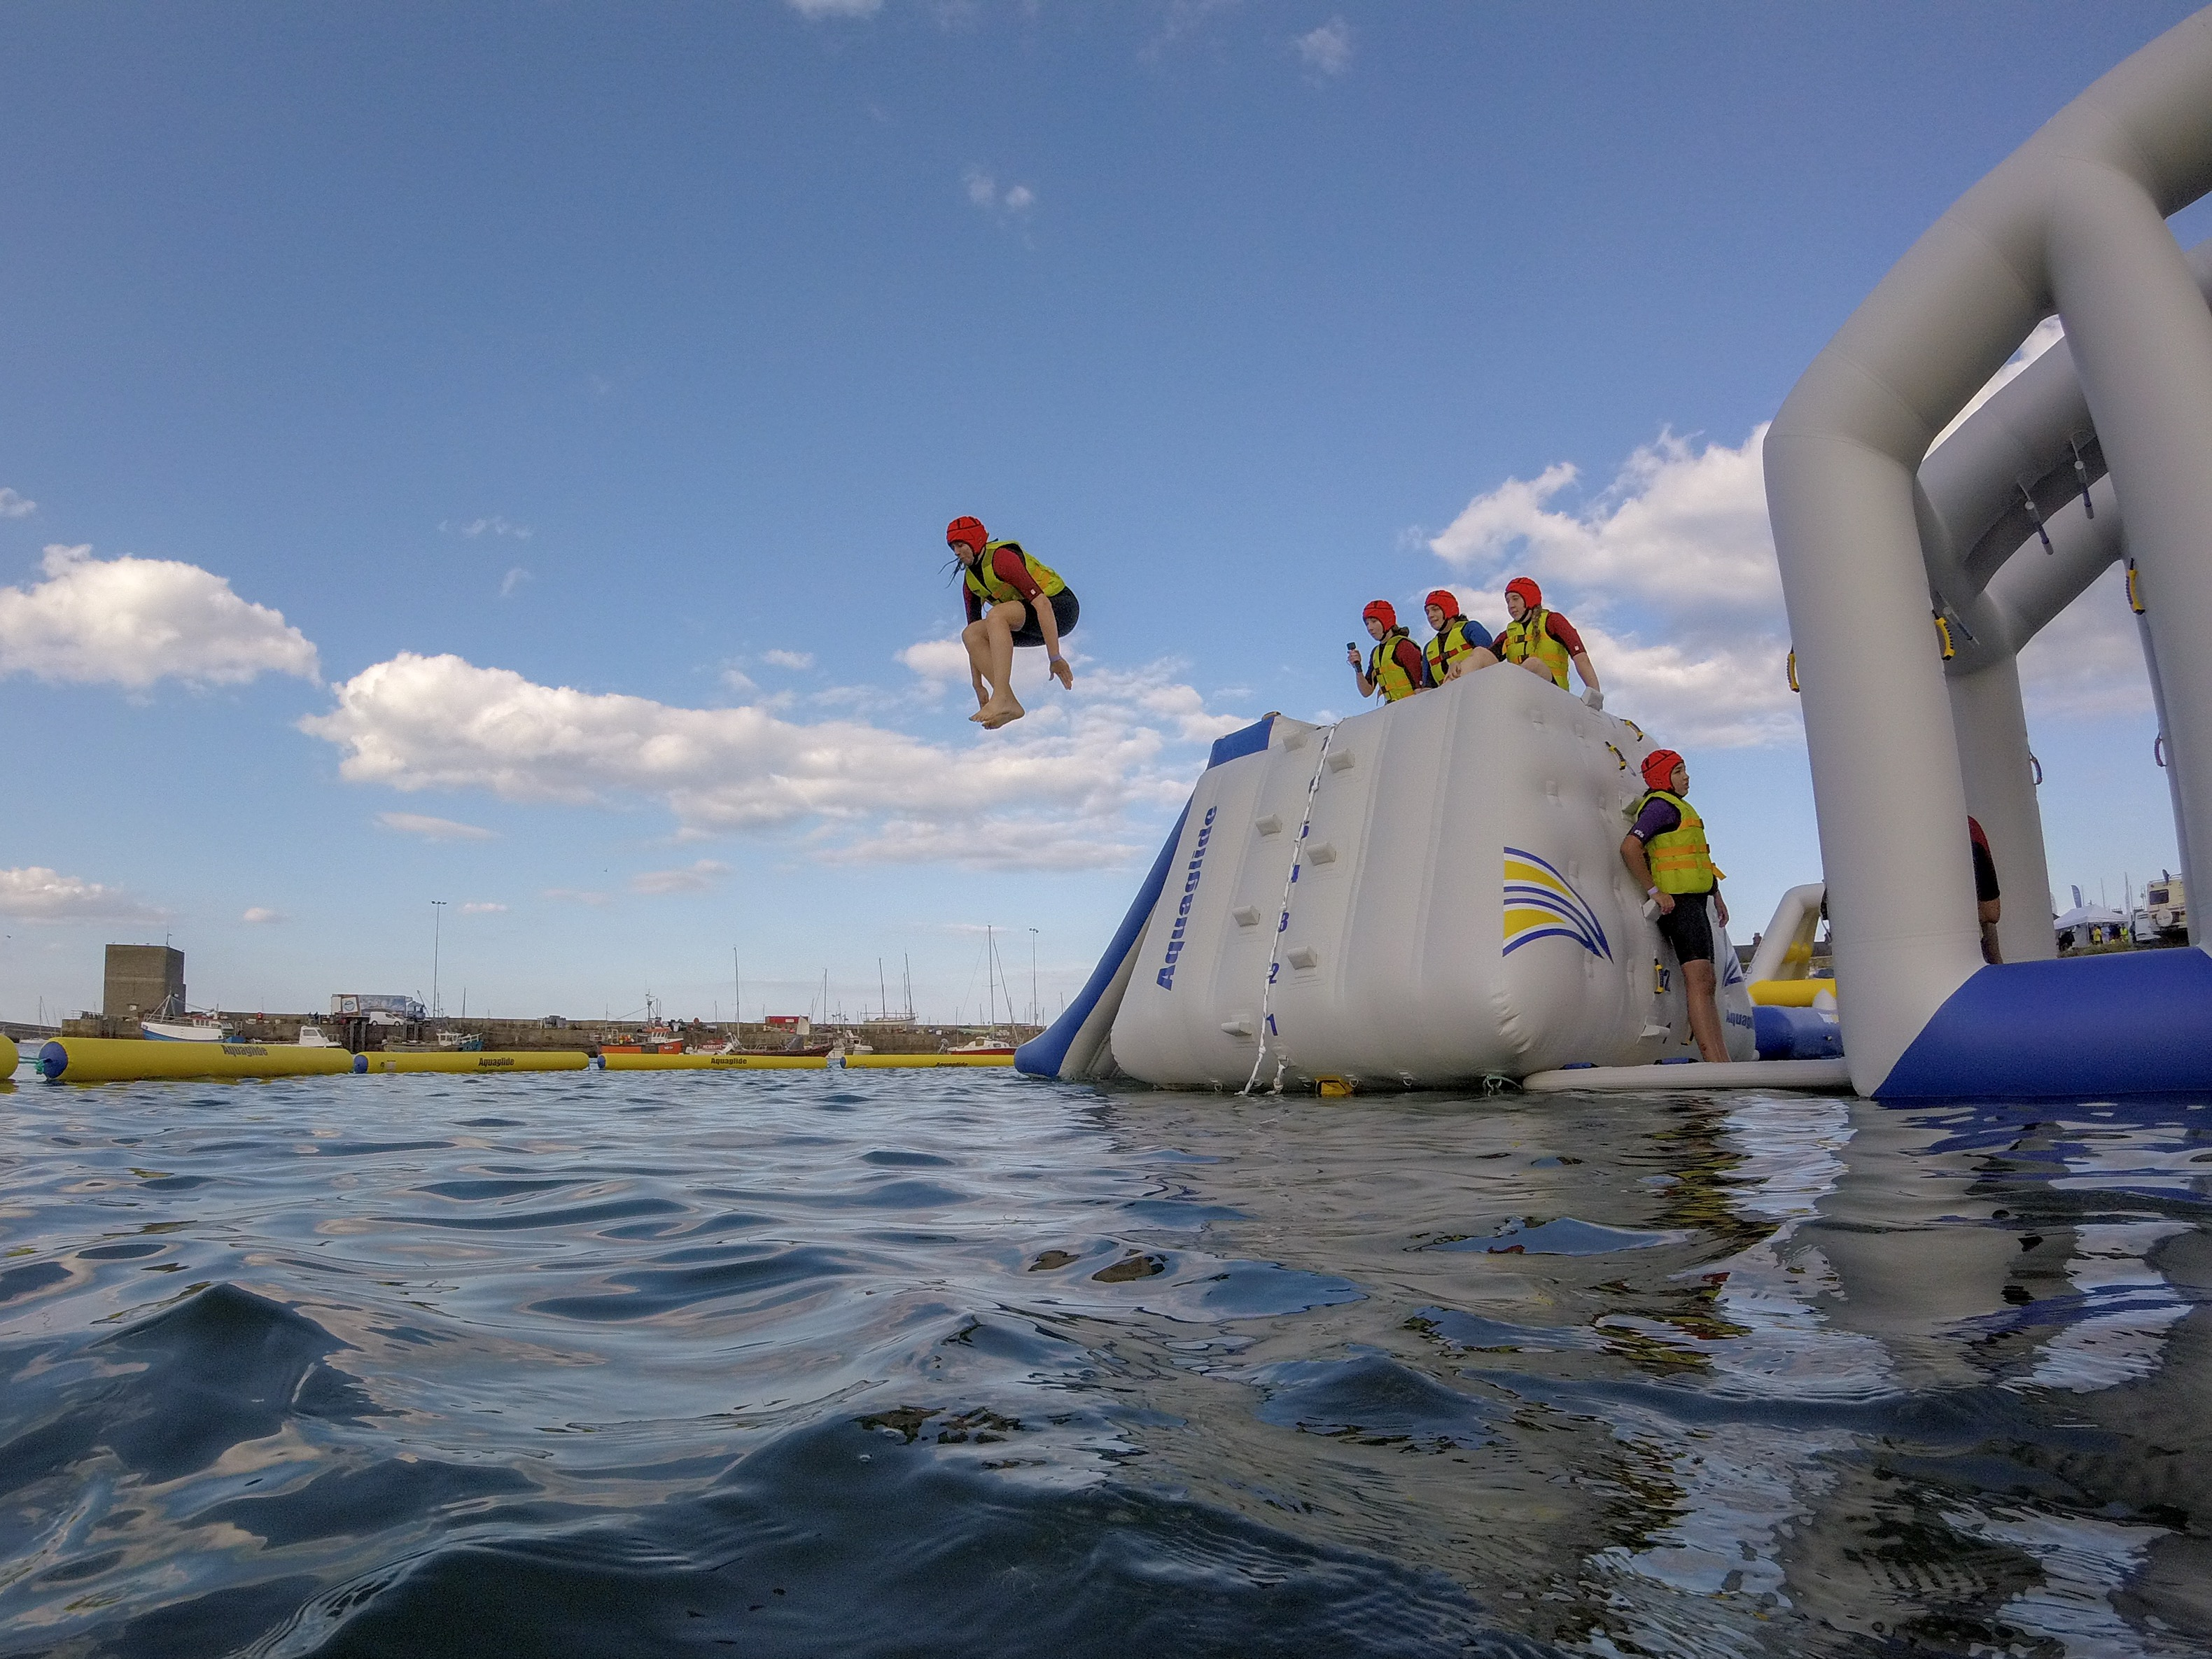 Diving into Summer, Outsider Style: Our Evening at Harbour Splash ...